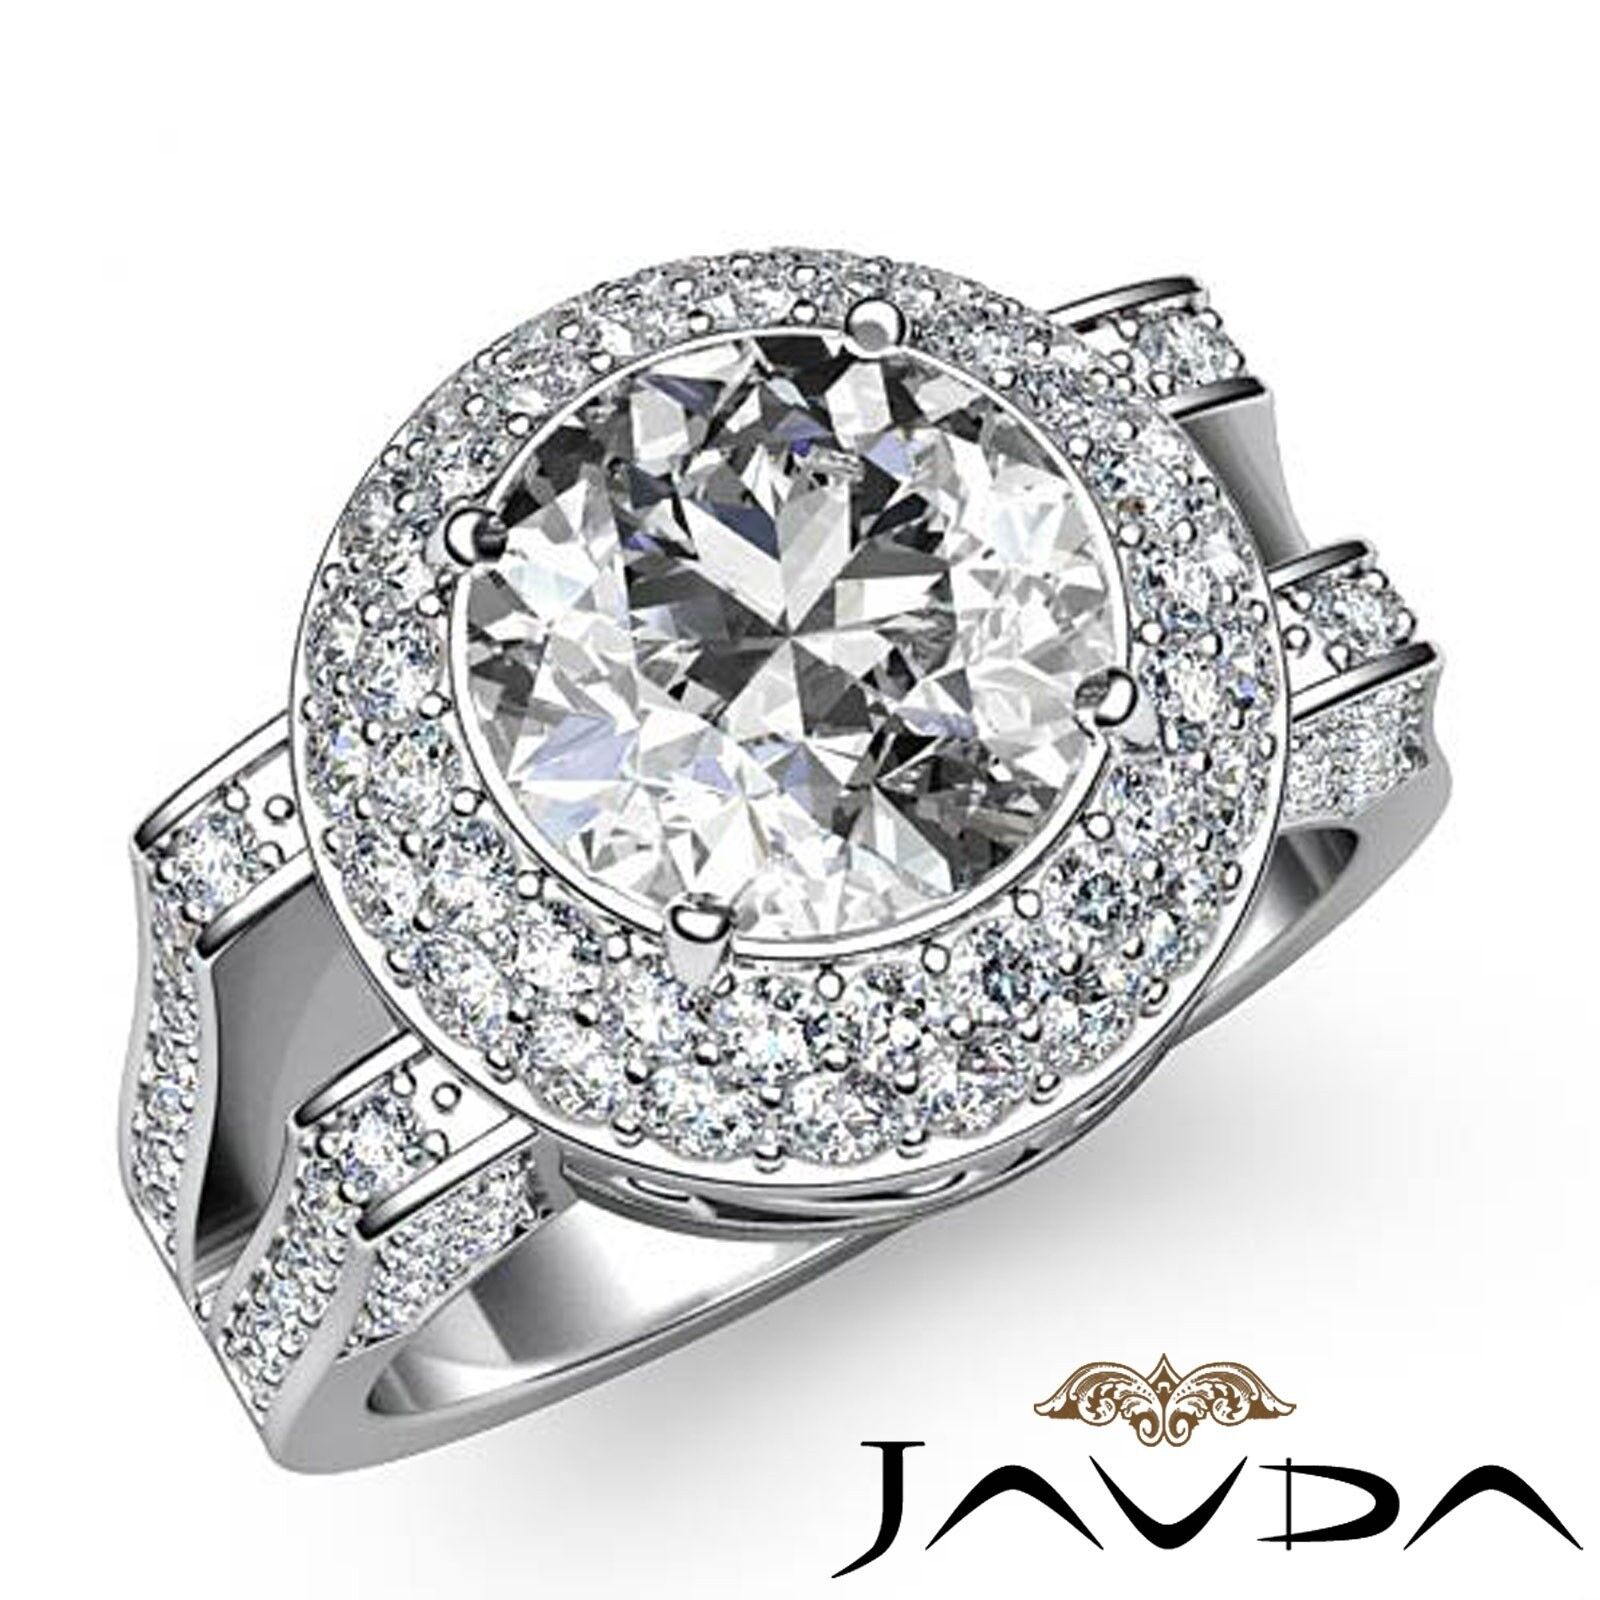 3.6ctw Gala Halo Split Shank Round Diamond Engagement Ring GIA H-VS1 White Gold